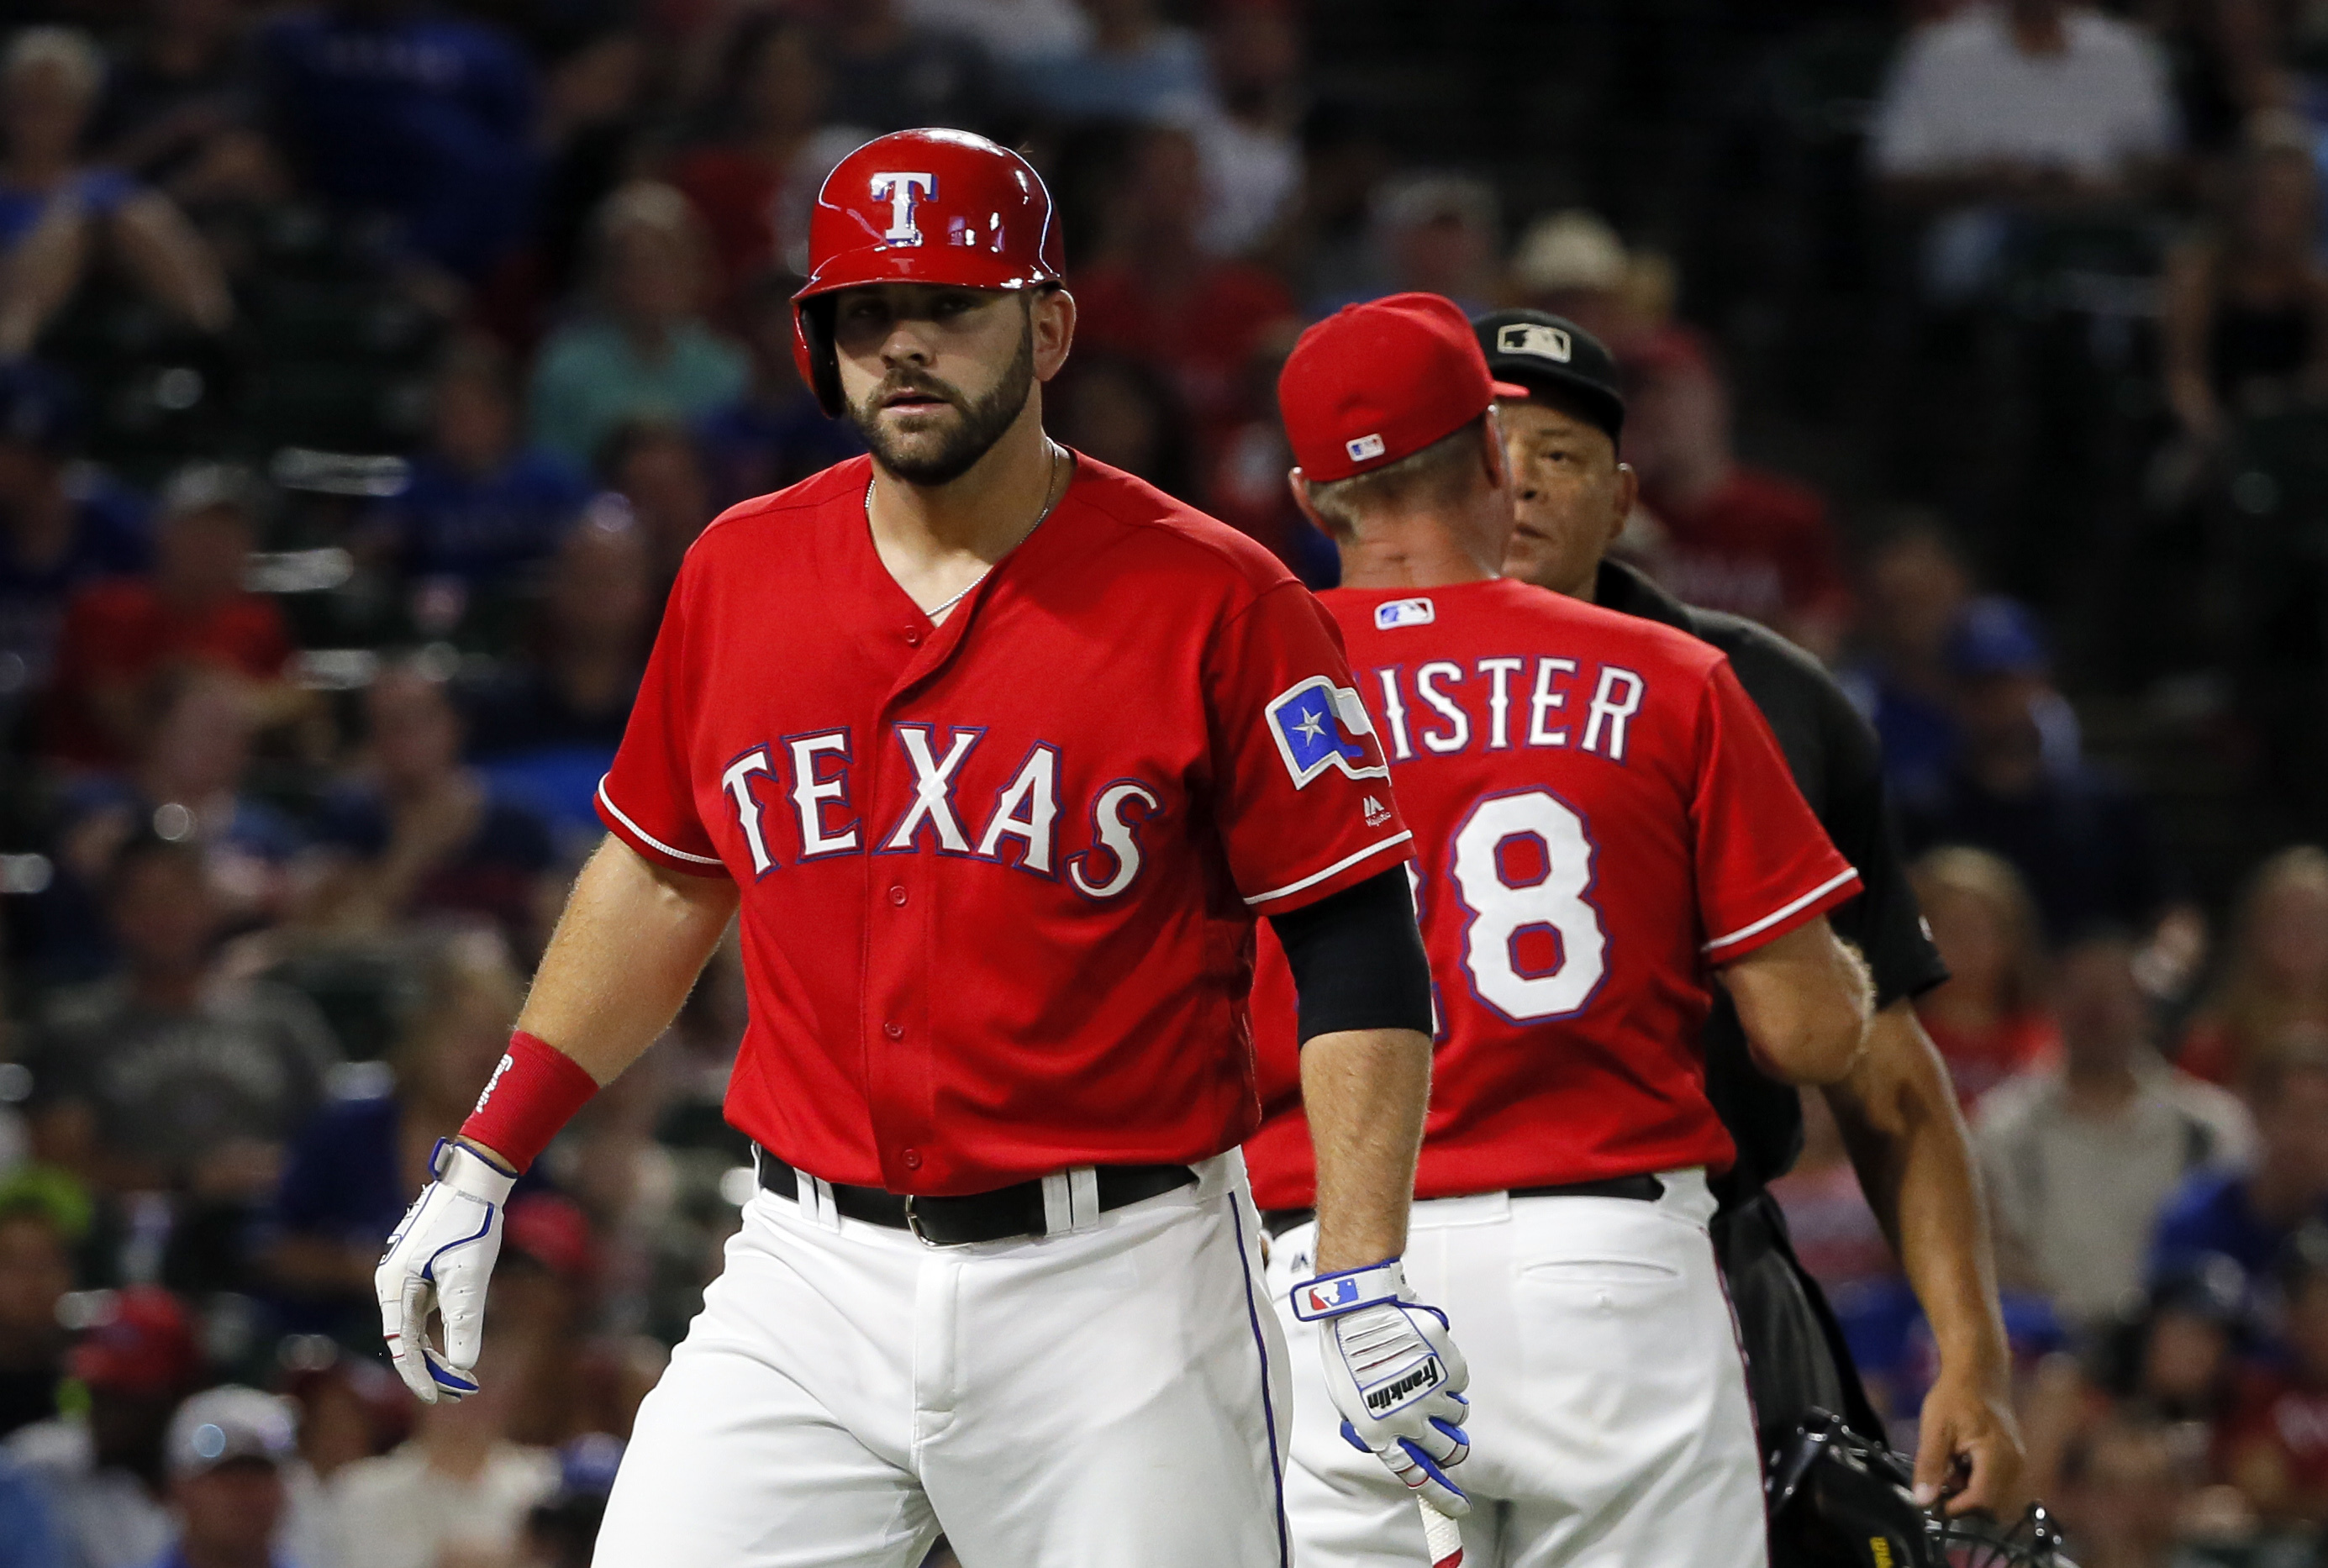 Texas Rangers' Mitch Moreland walks to the dugout after being ejected from the game by umpire Kerwin Danley, rear, who argues with manager Jeff Banister (28) in the fourth inning of a baseball game, Monday, Sept. 19, 2016, in Arlington, Texas. (AP Photo/T